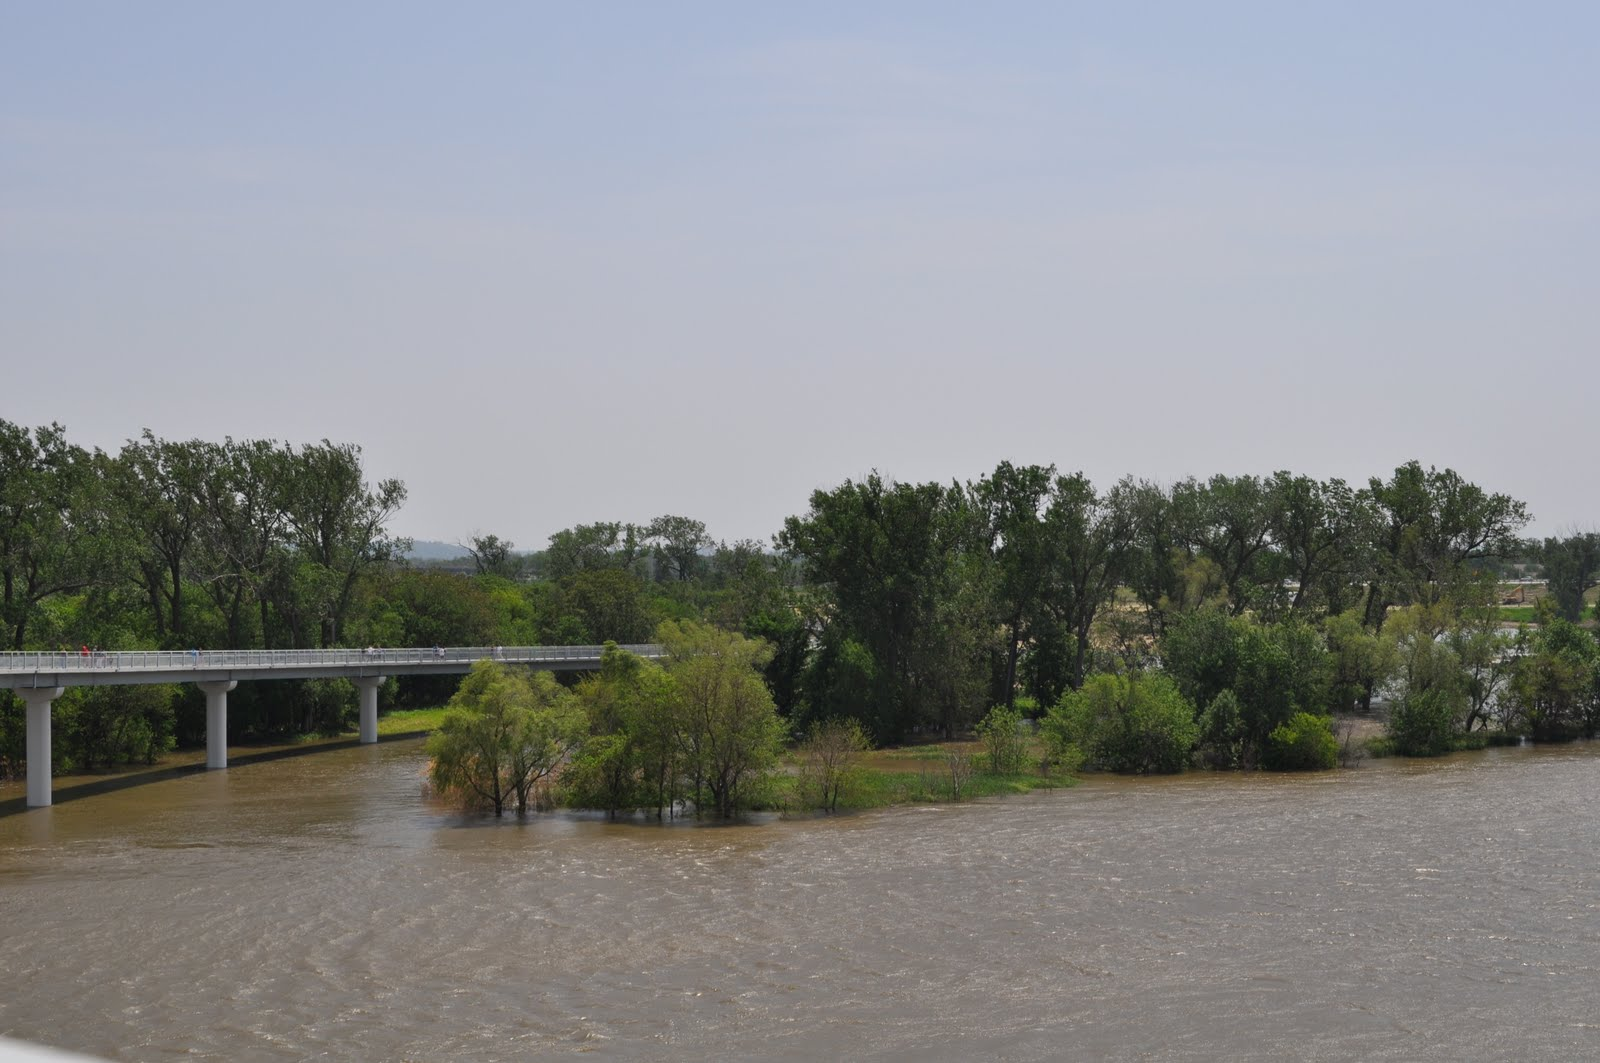 The Missouri River is near flood stage. I've been wanting to check out